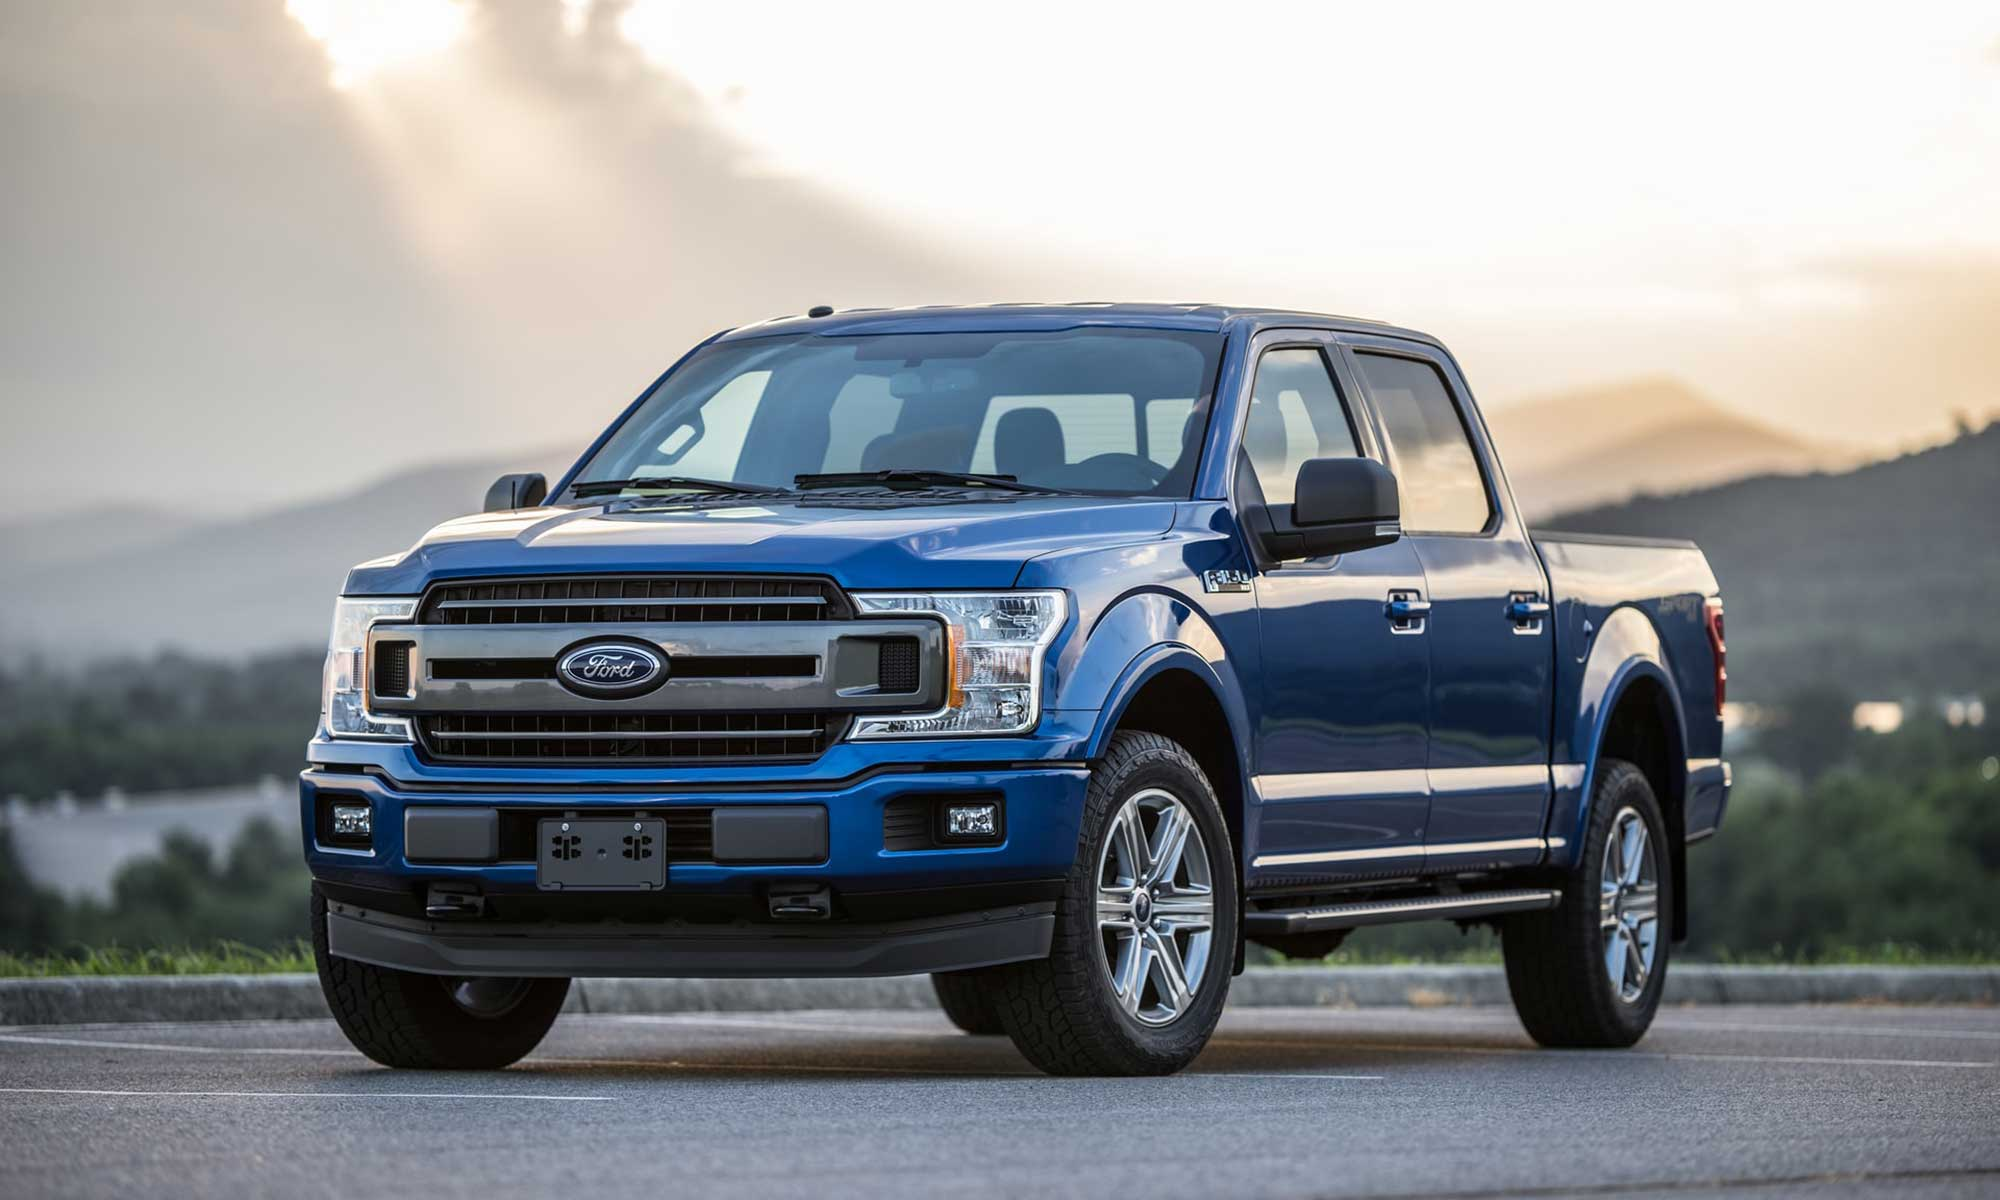 Ford F-150 truck buyers guide